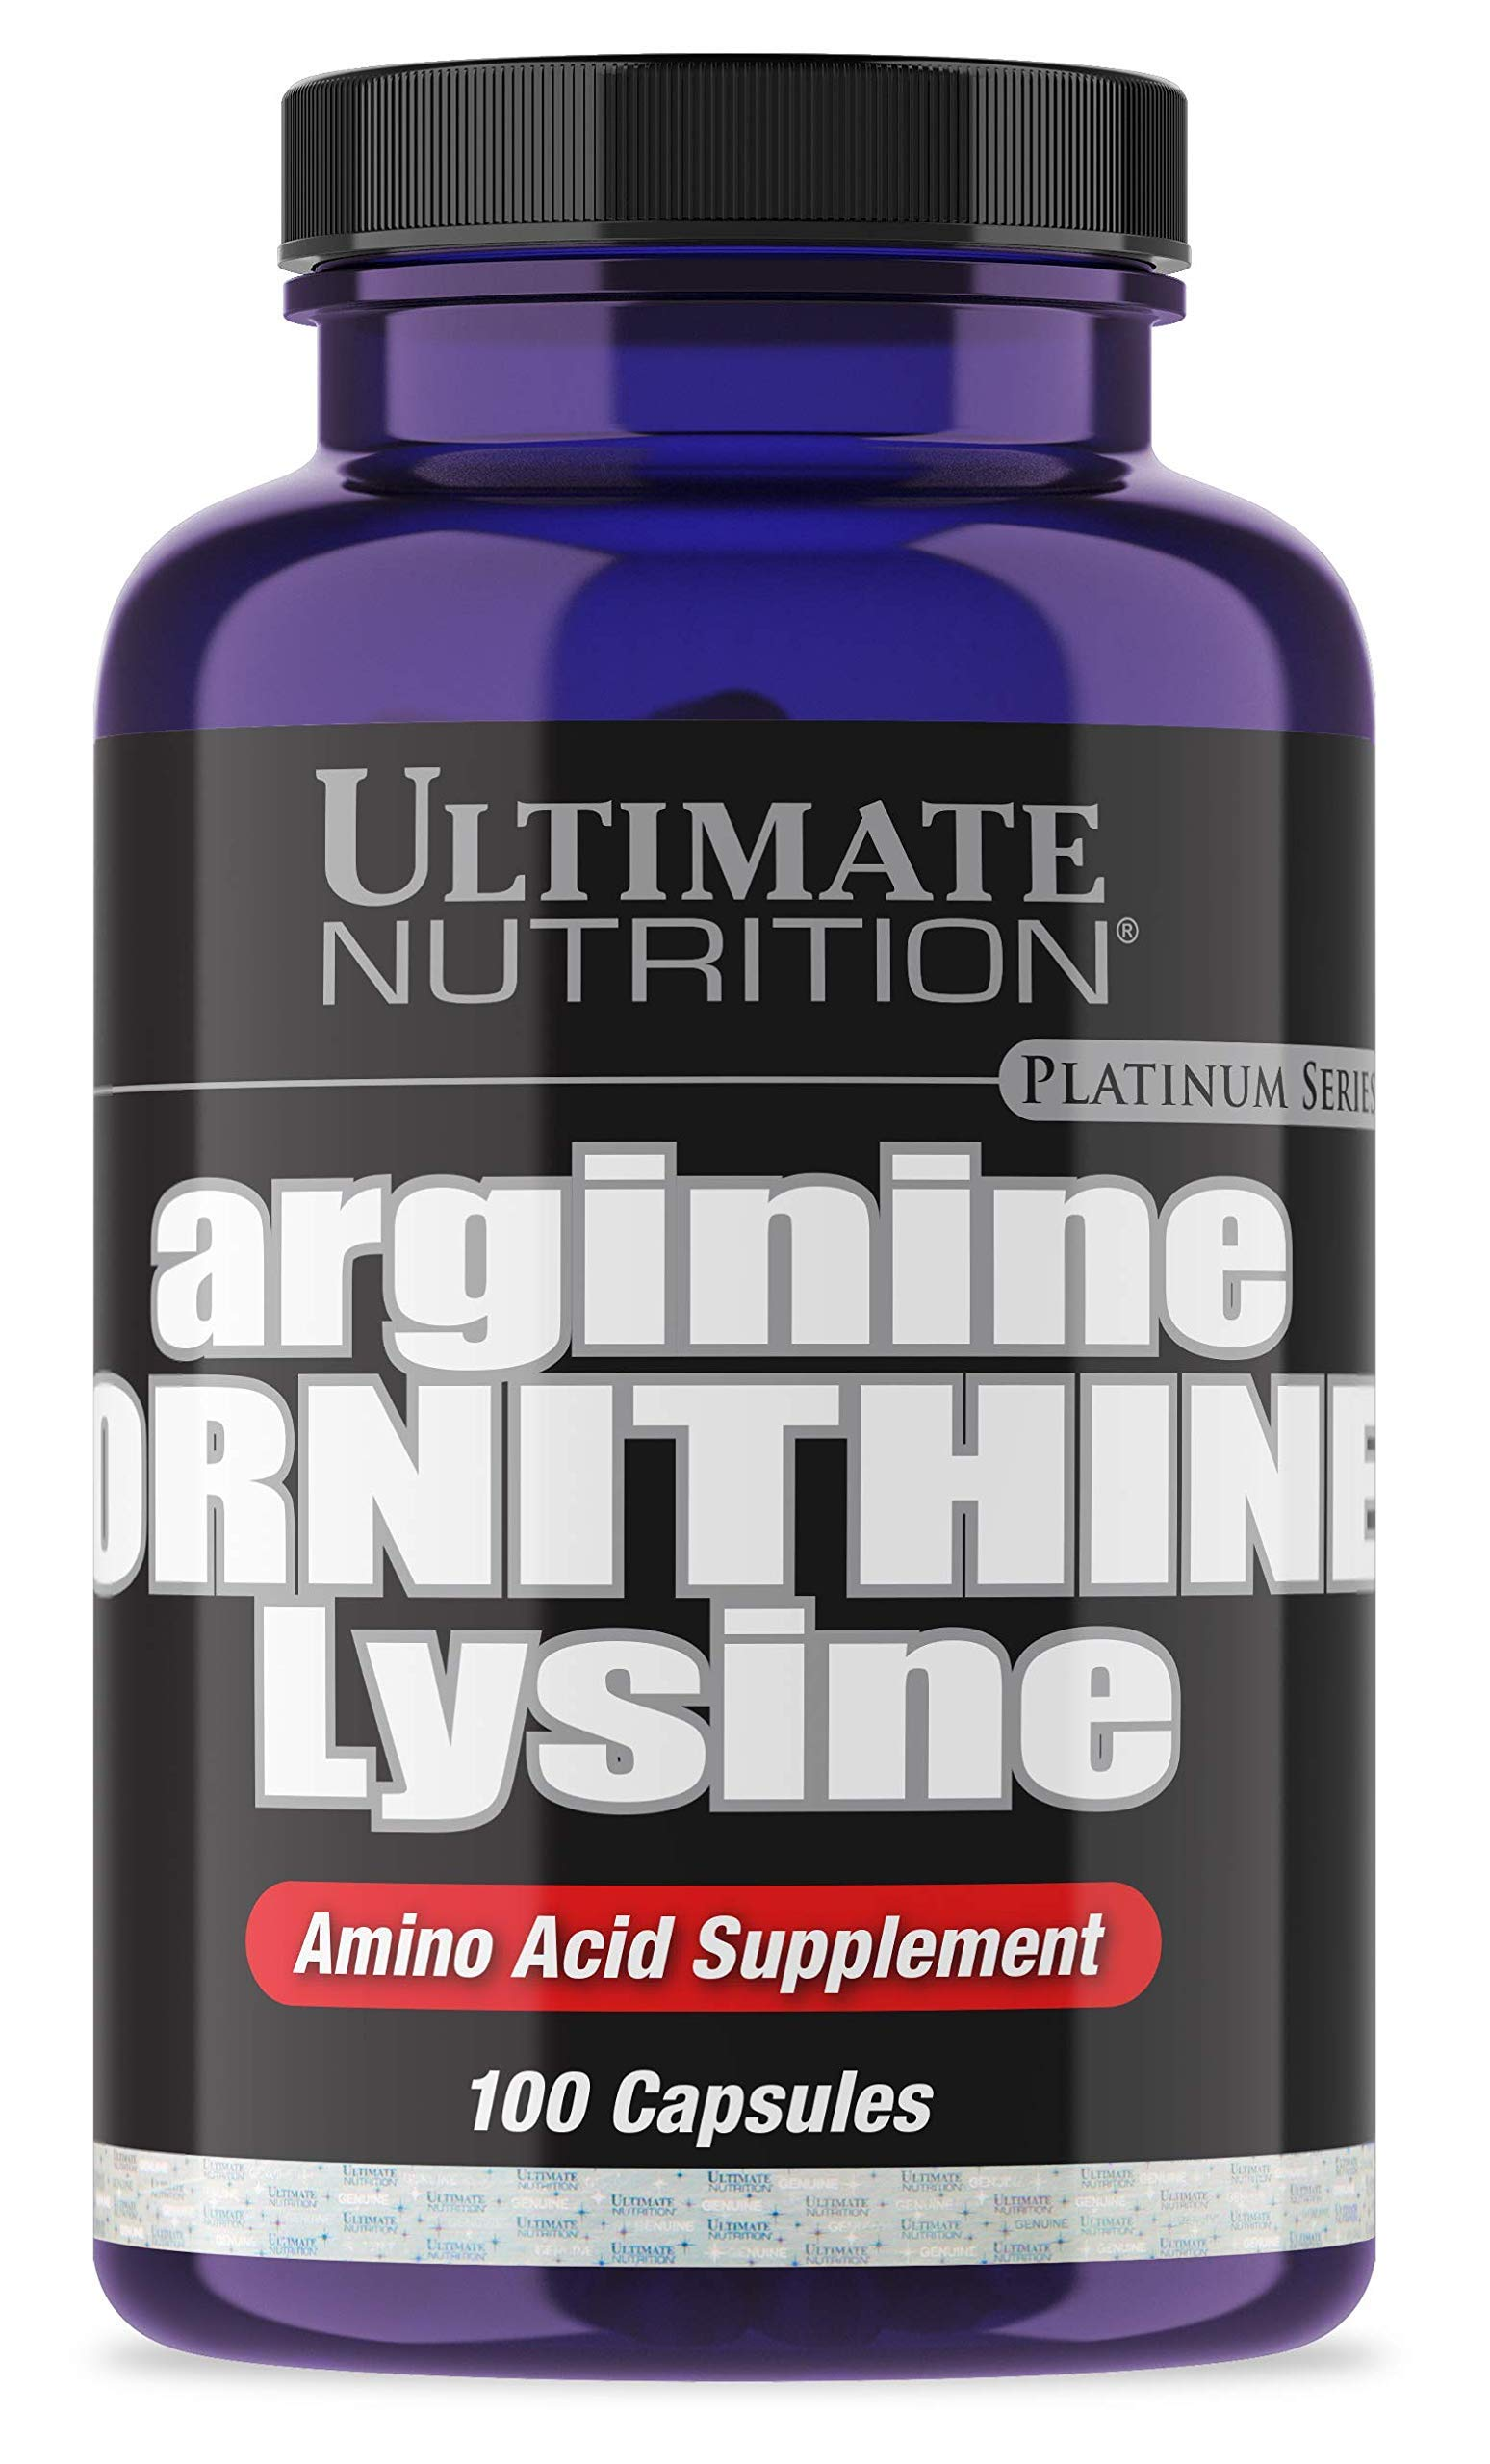 Ultimate Nutrition Max Strength Arginine Ornithine Lysine, Triple Amino Acid Supplement, 100 Capsules by Ultimate Nutrition